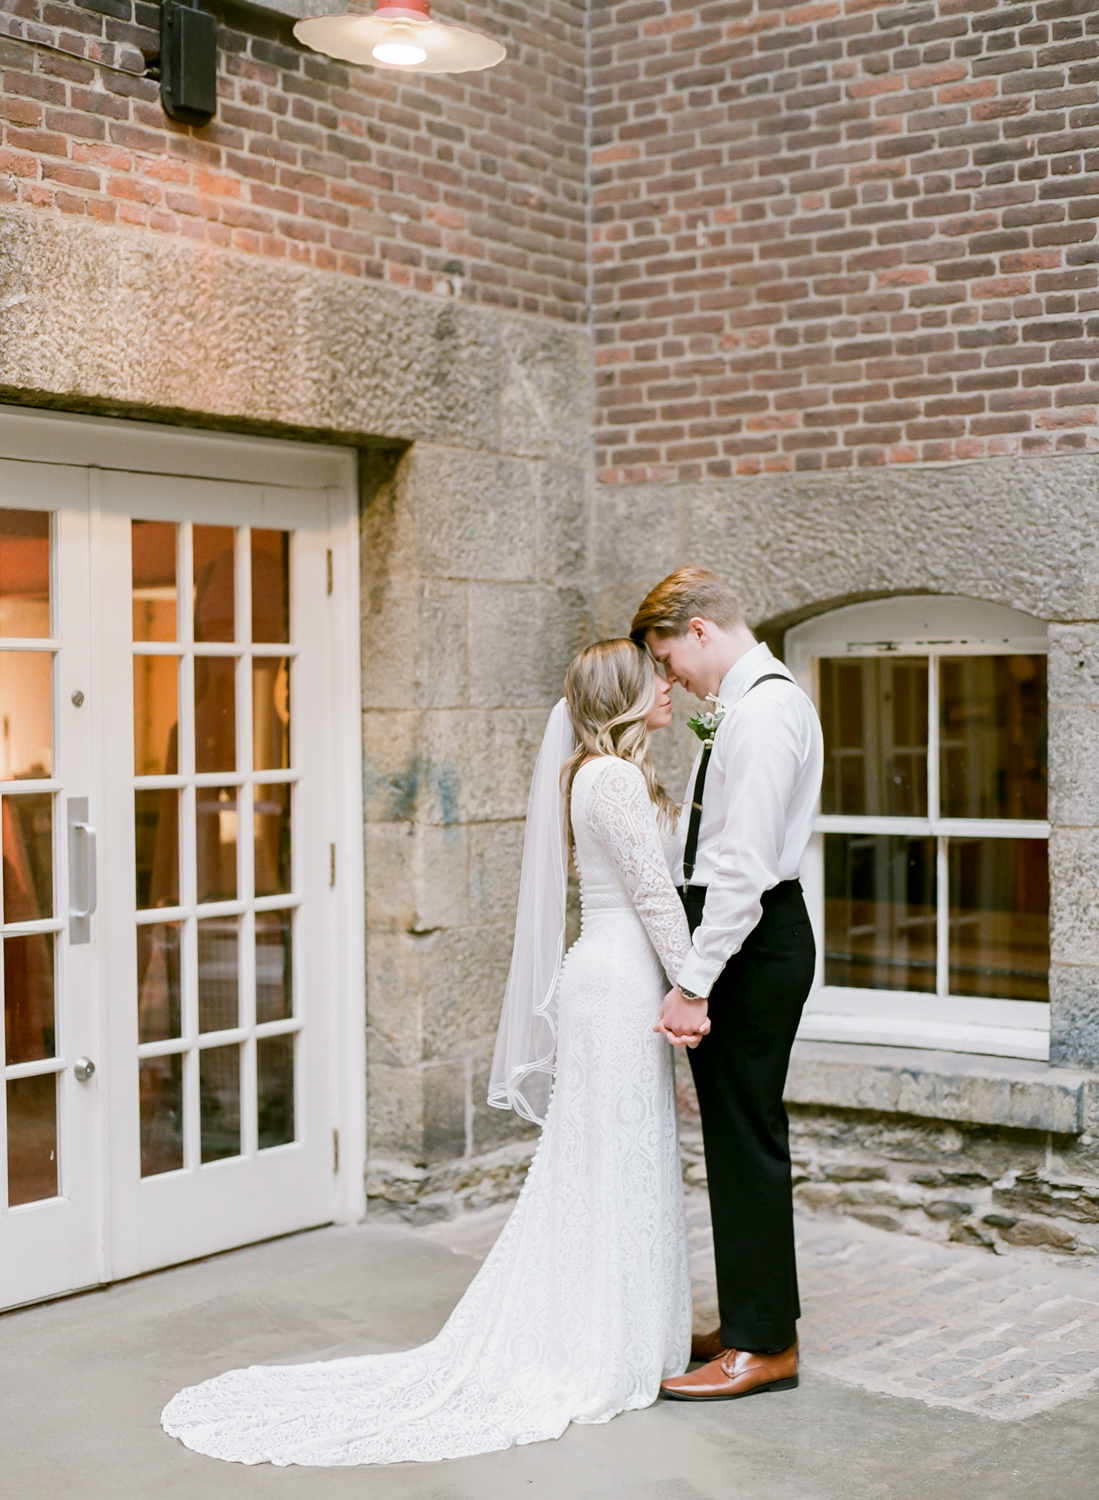 Jacqueline Anne Photography - Jessica and Aaron in Halifax-56.jpg